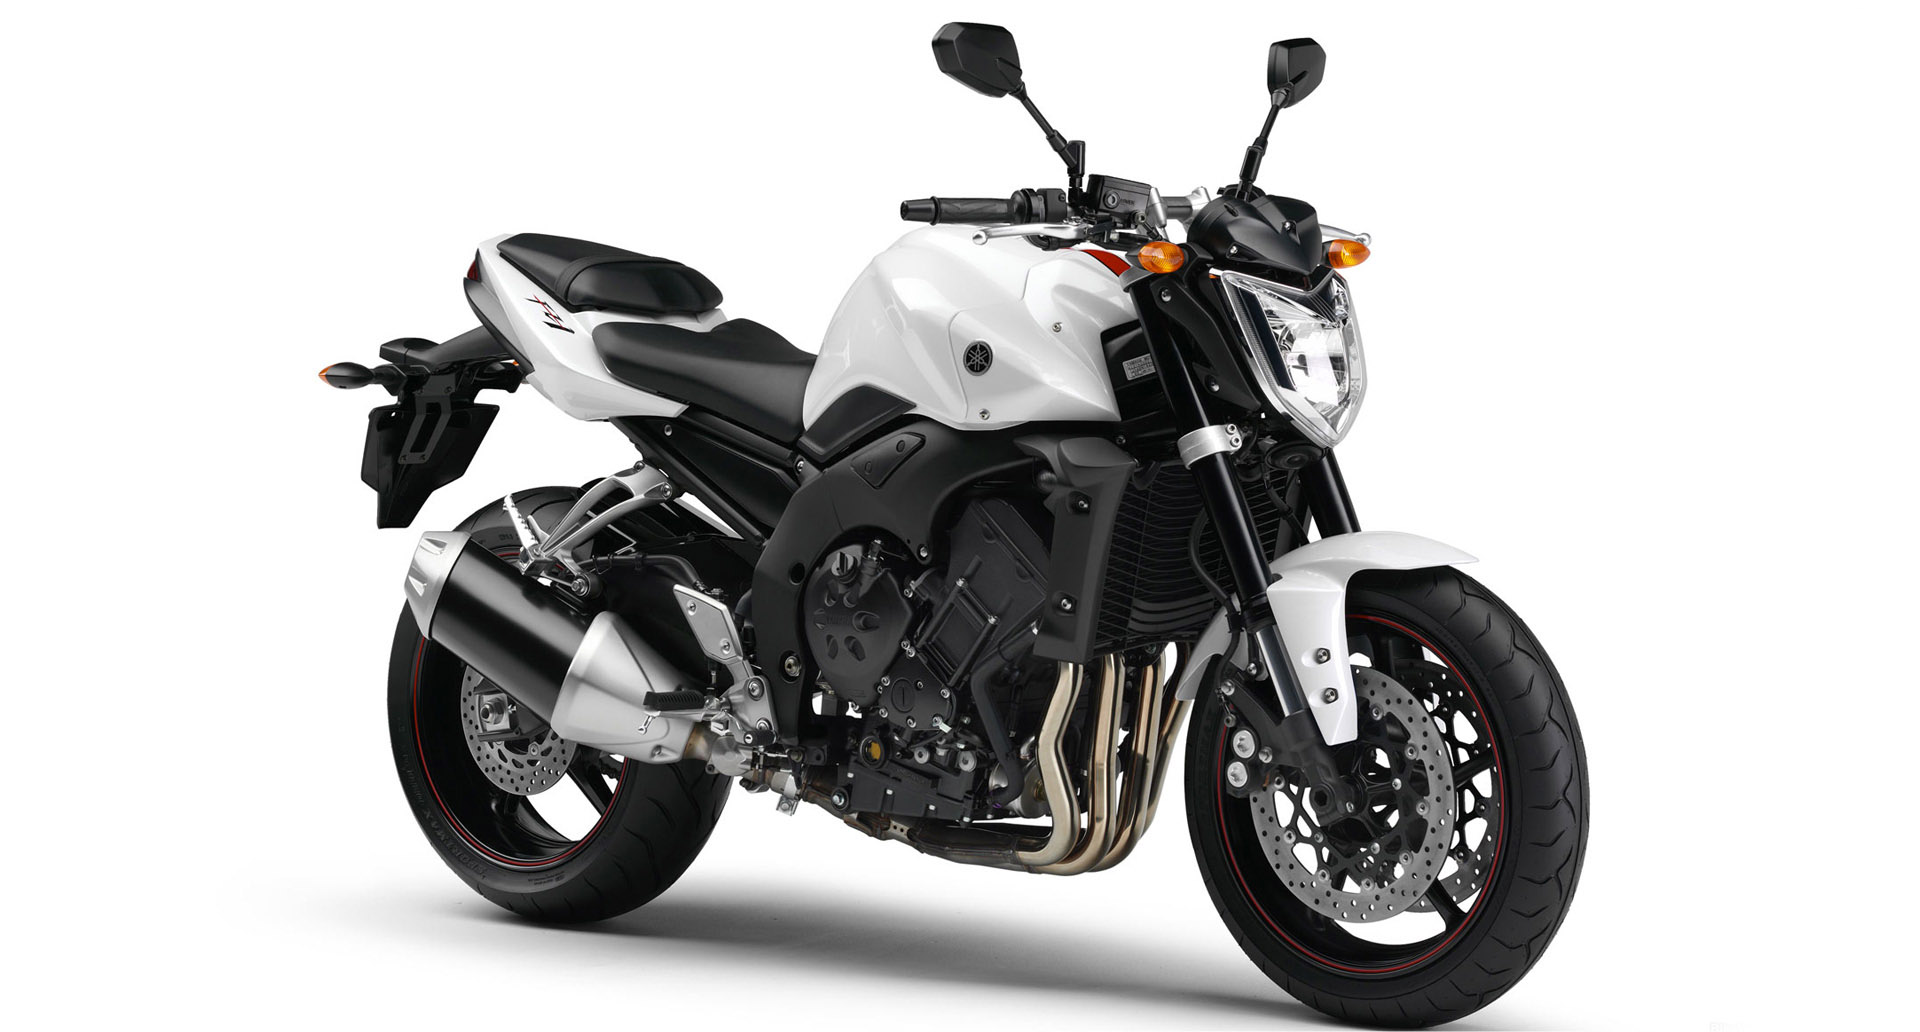 YAMAHA FZ1-FZ1 N-FZ1 FAZER-FZ1 FAZER ABS: the products for the Fork